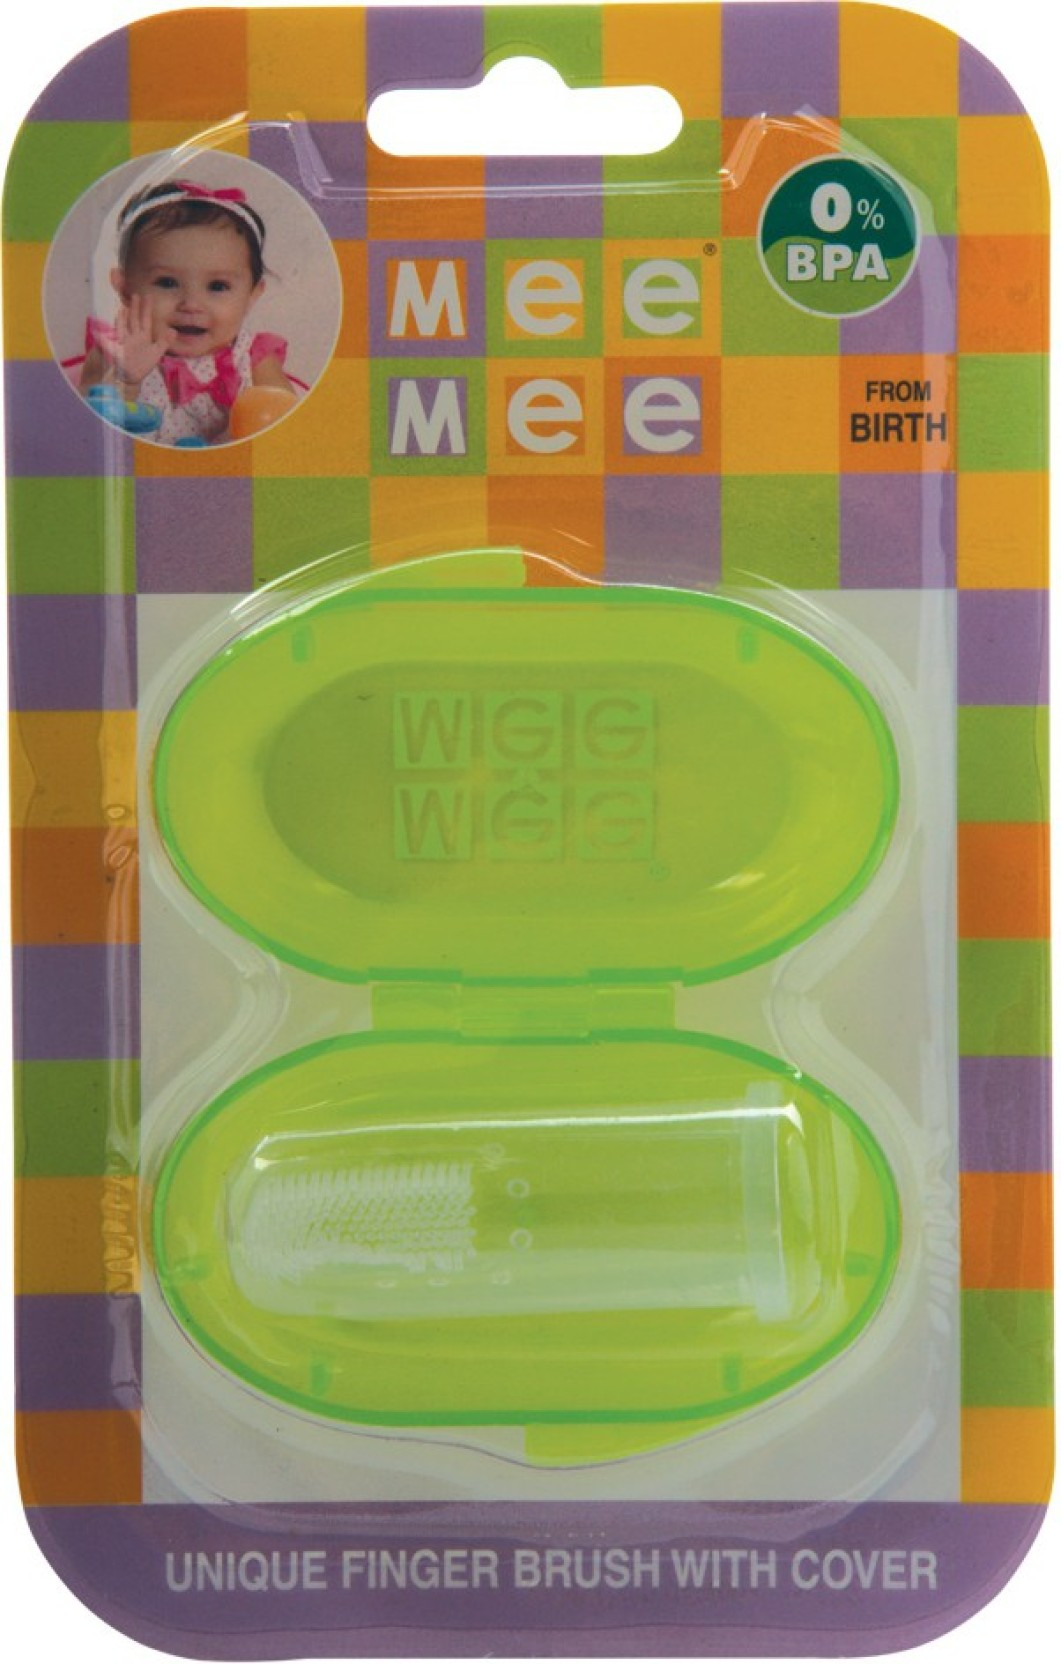 Meemee Unification Dummy 21 Soft Toothbrush Buy Baby Care Products Pigeon Training Lesson 3 Tooth Brush Step